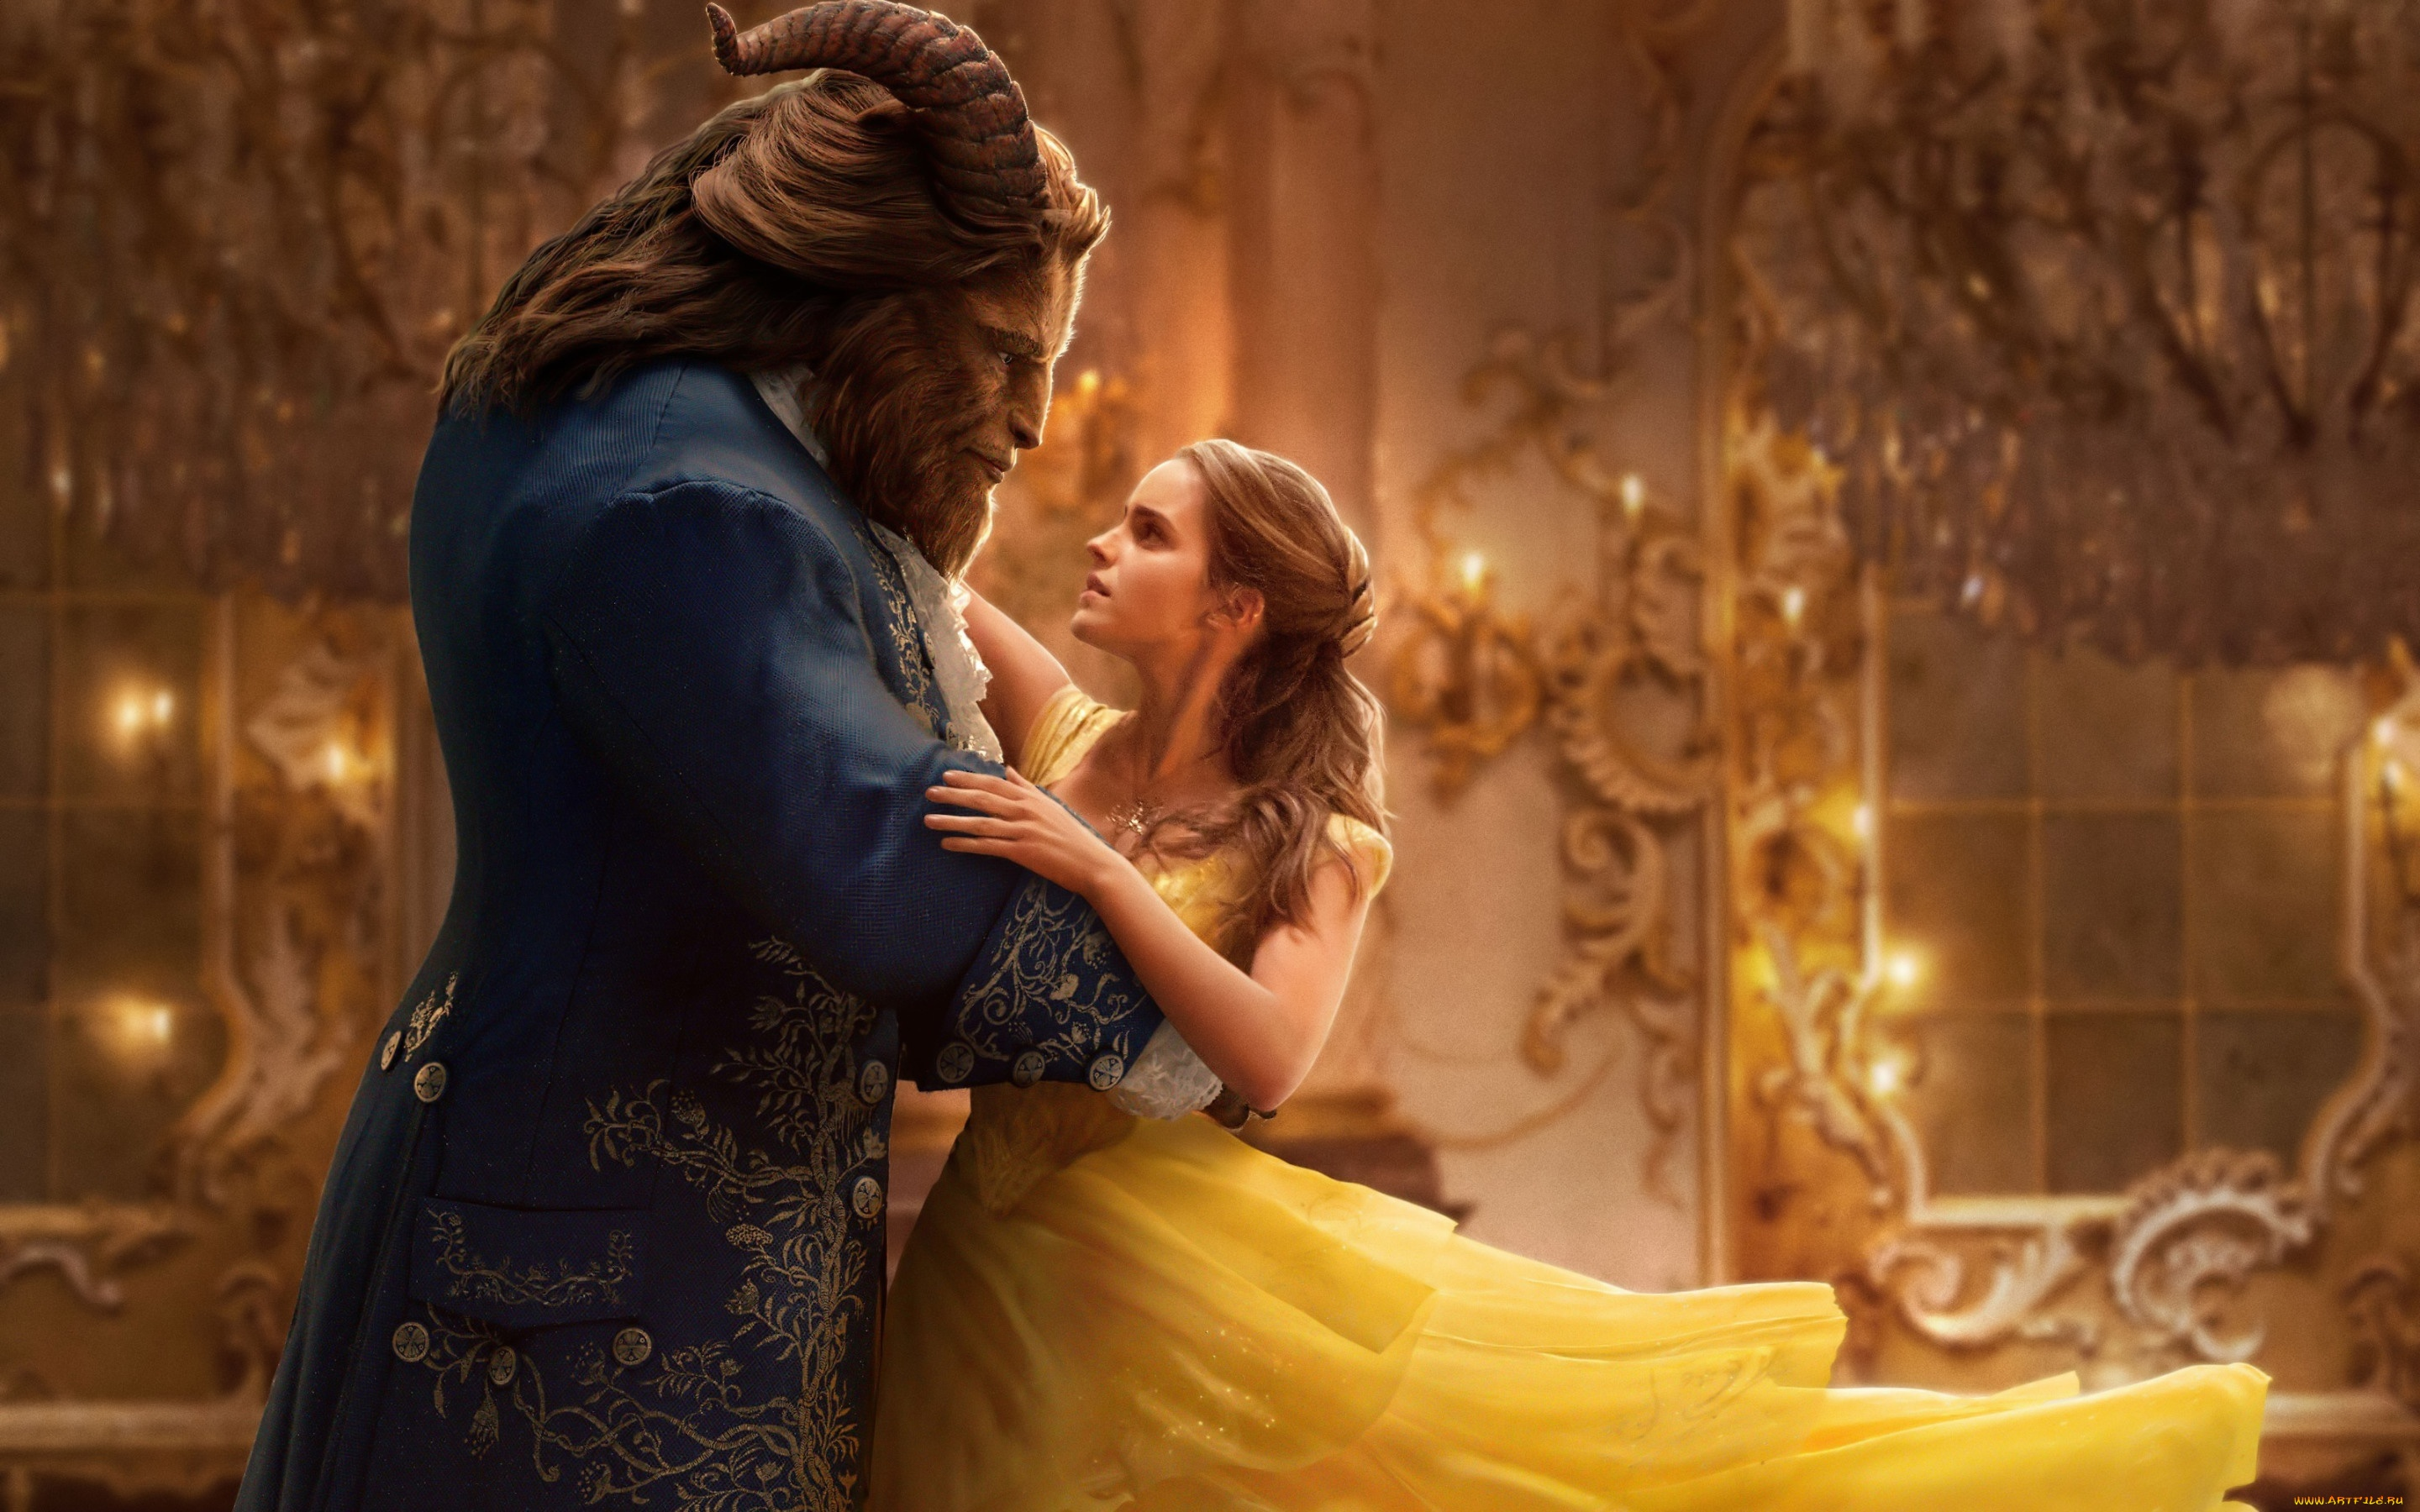 kino-filmy-beauty-and-the-beast-beauty-a-1099416